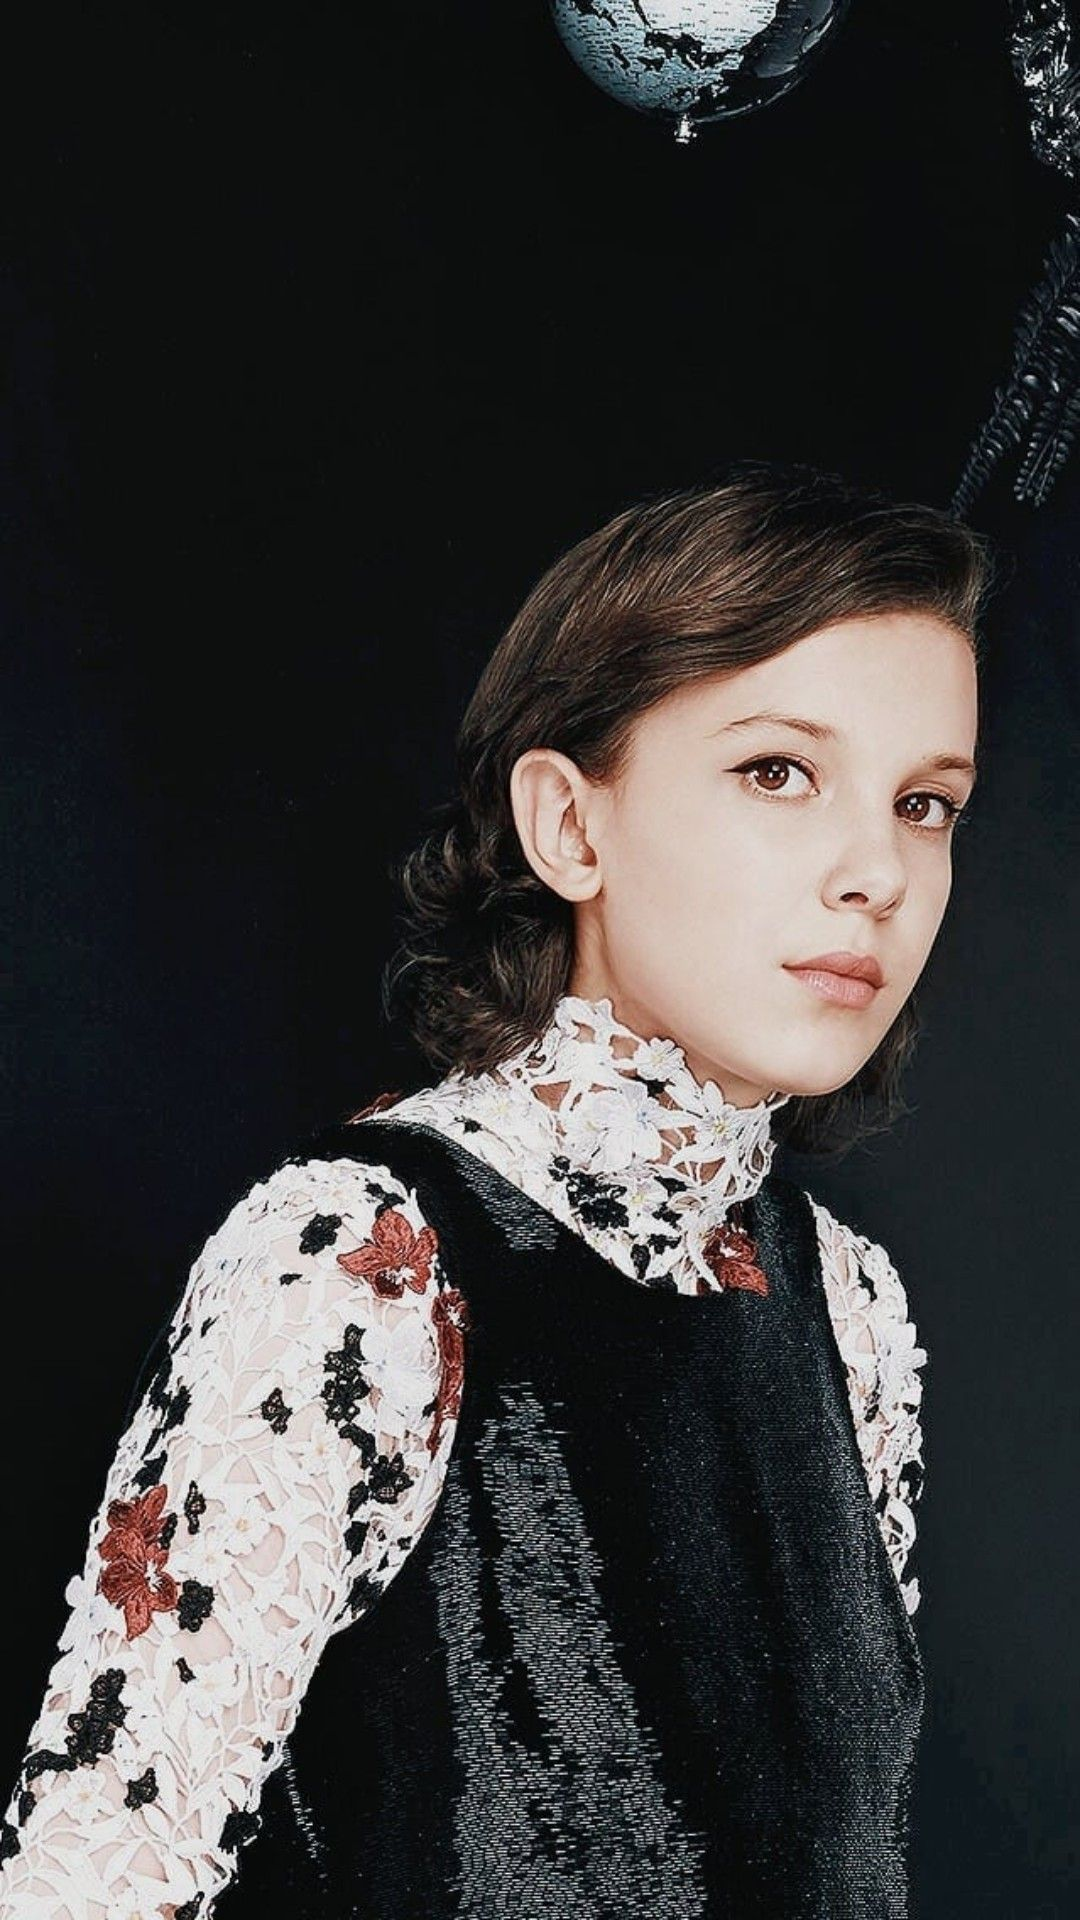 Pin By Izzygogis On Millie Bobby Brown Stranger Things Millie Bobby Brown Bobby Brown